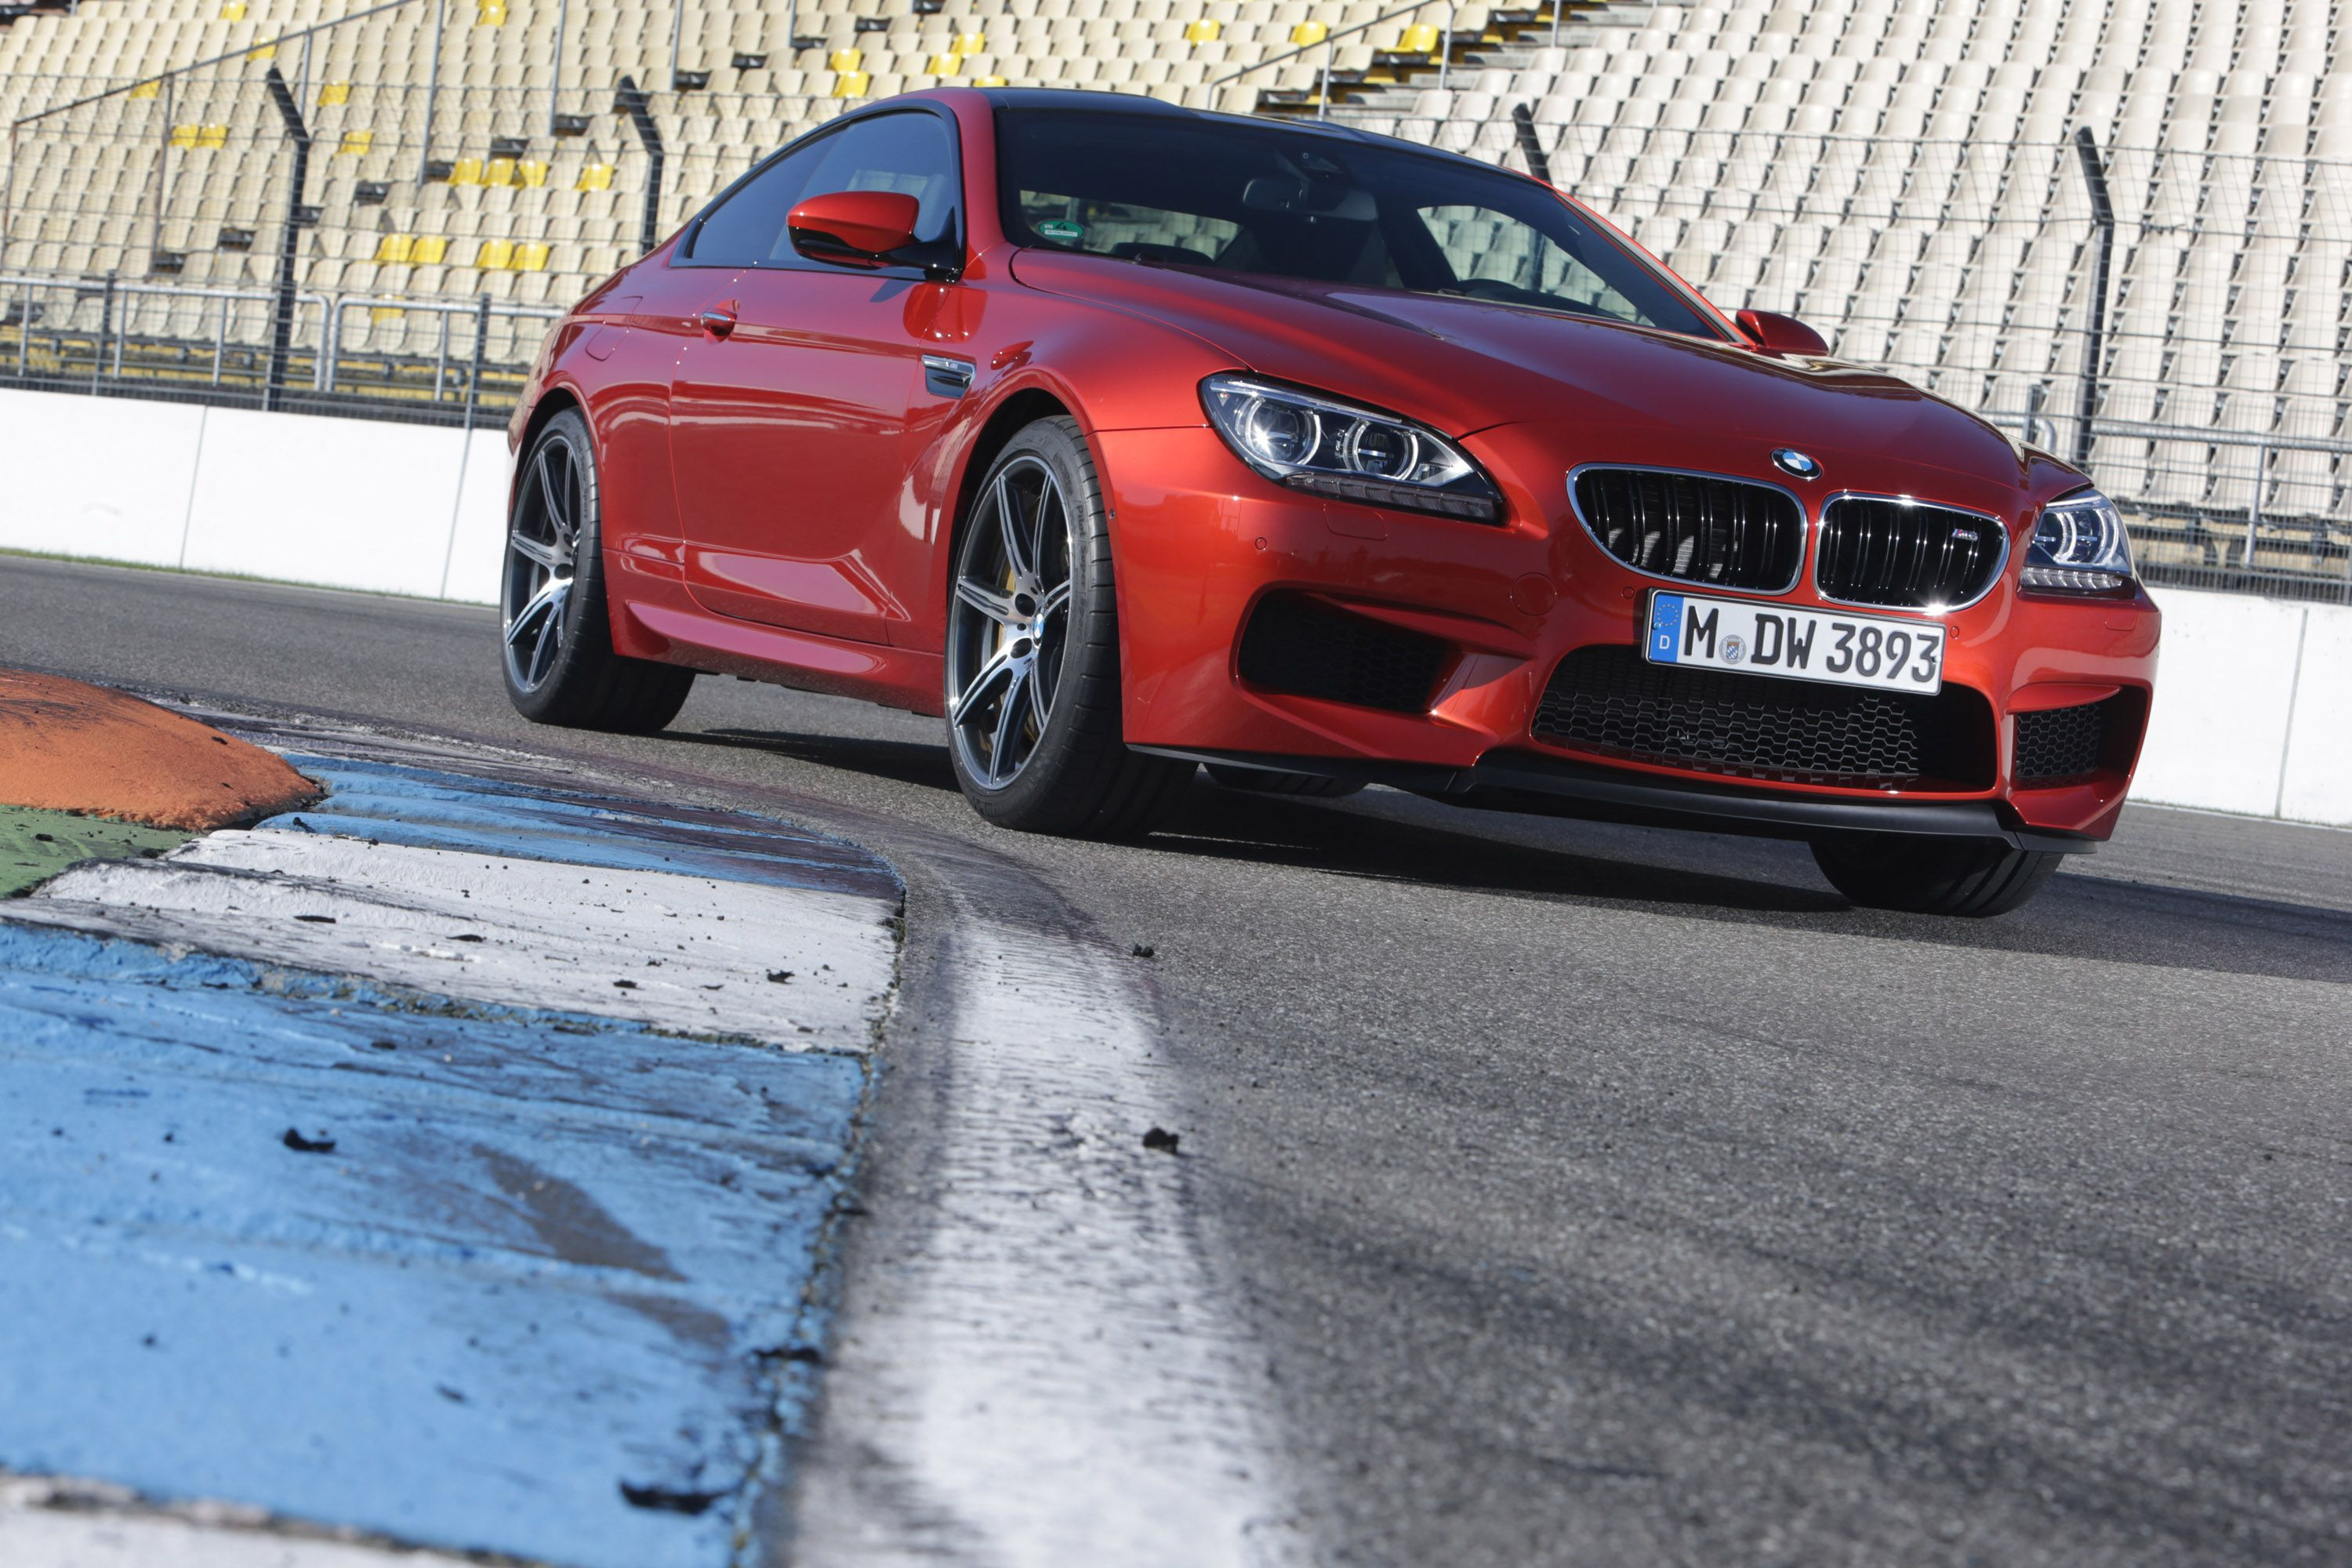 2014 Bmw M6 Competition Package Bmw M6 Coupe Bmw M6 Bmw